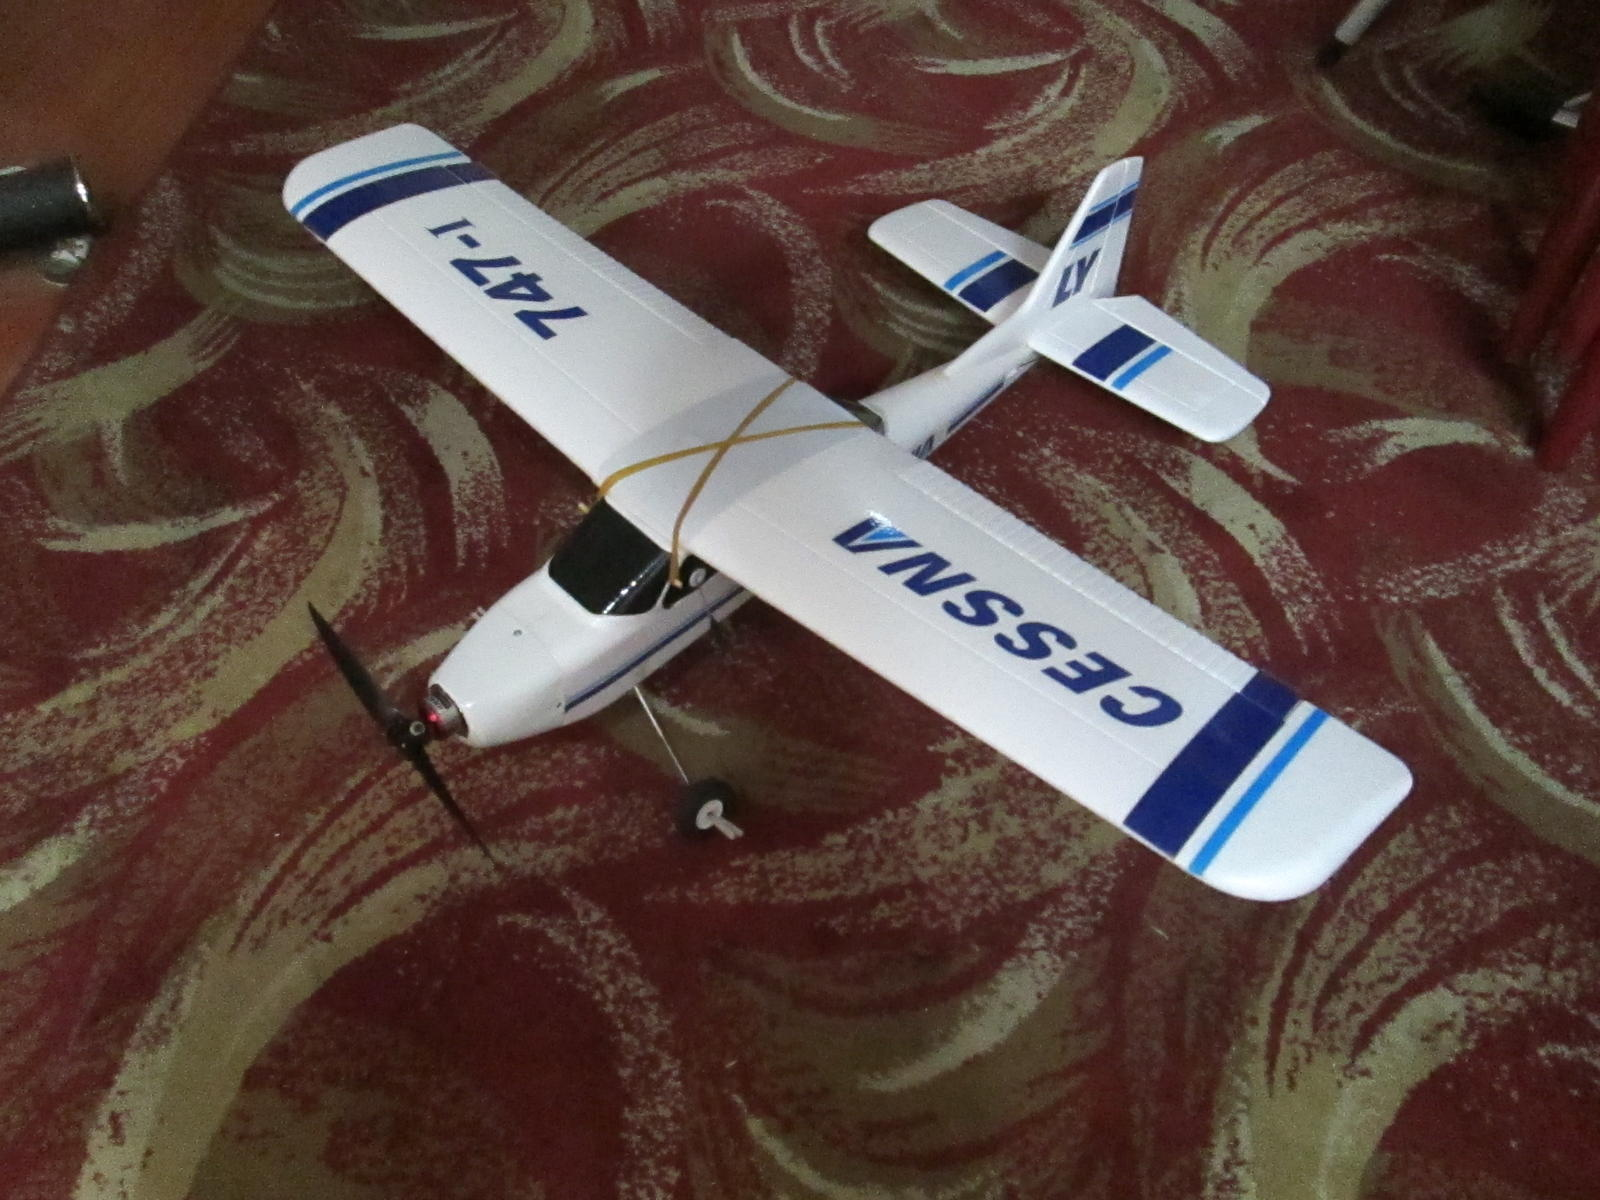 rc cessna TW-747-1 with brushless, lipo, prop saver